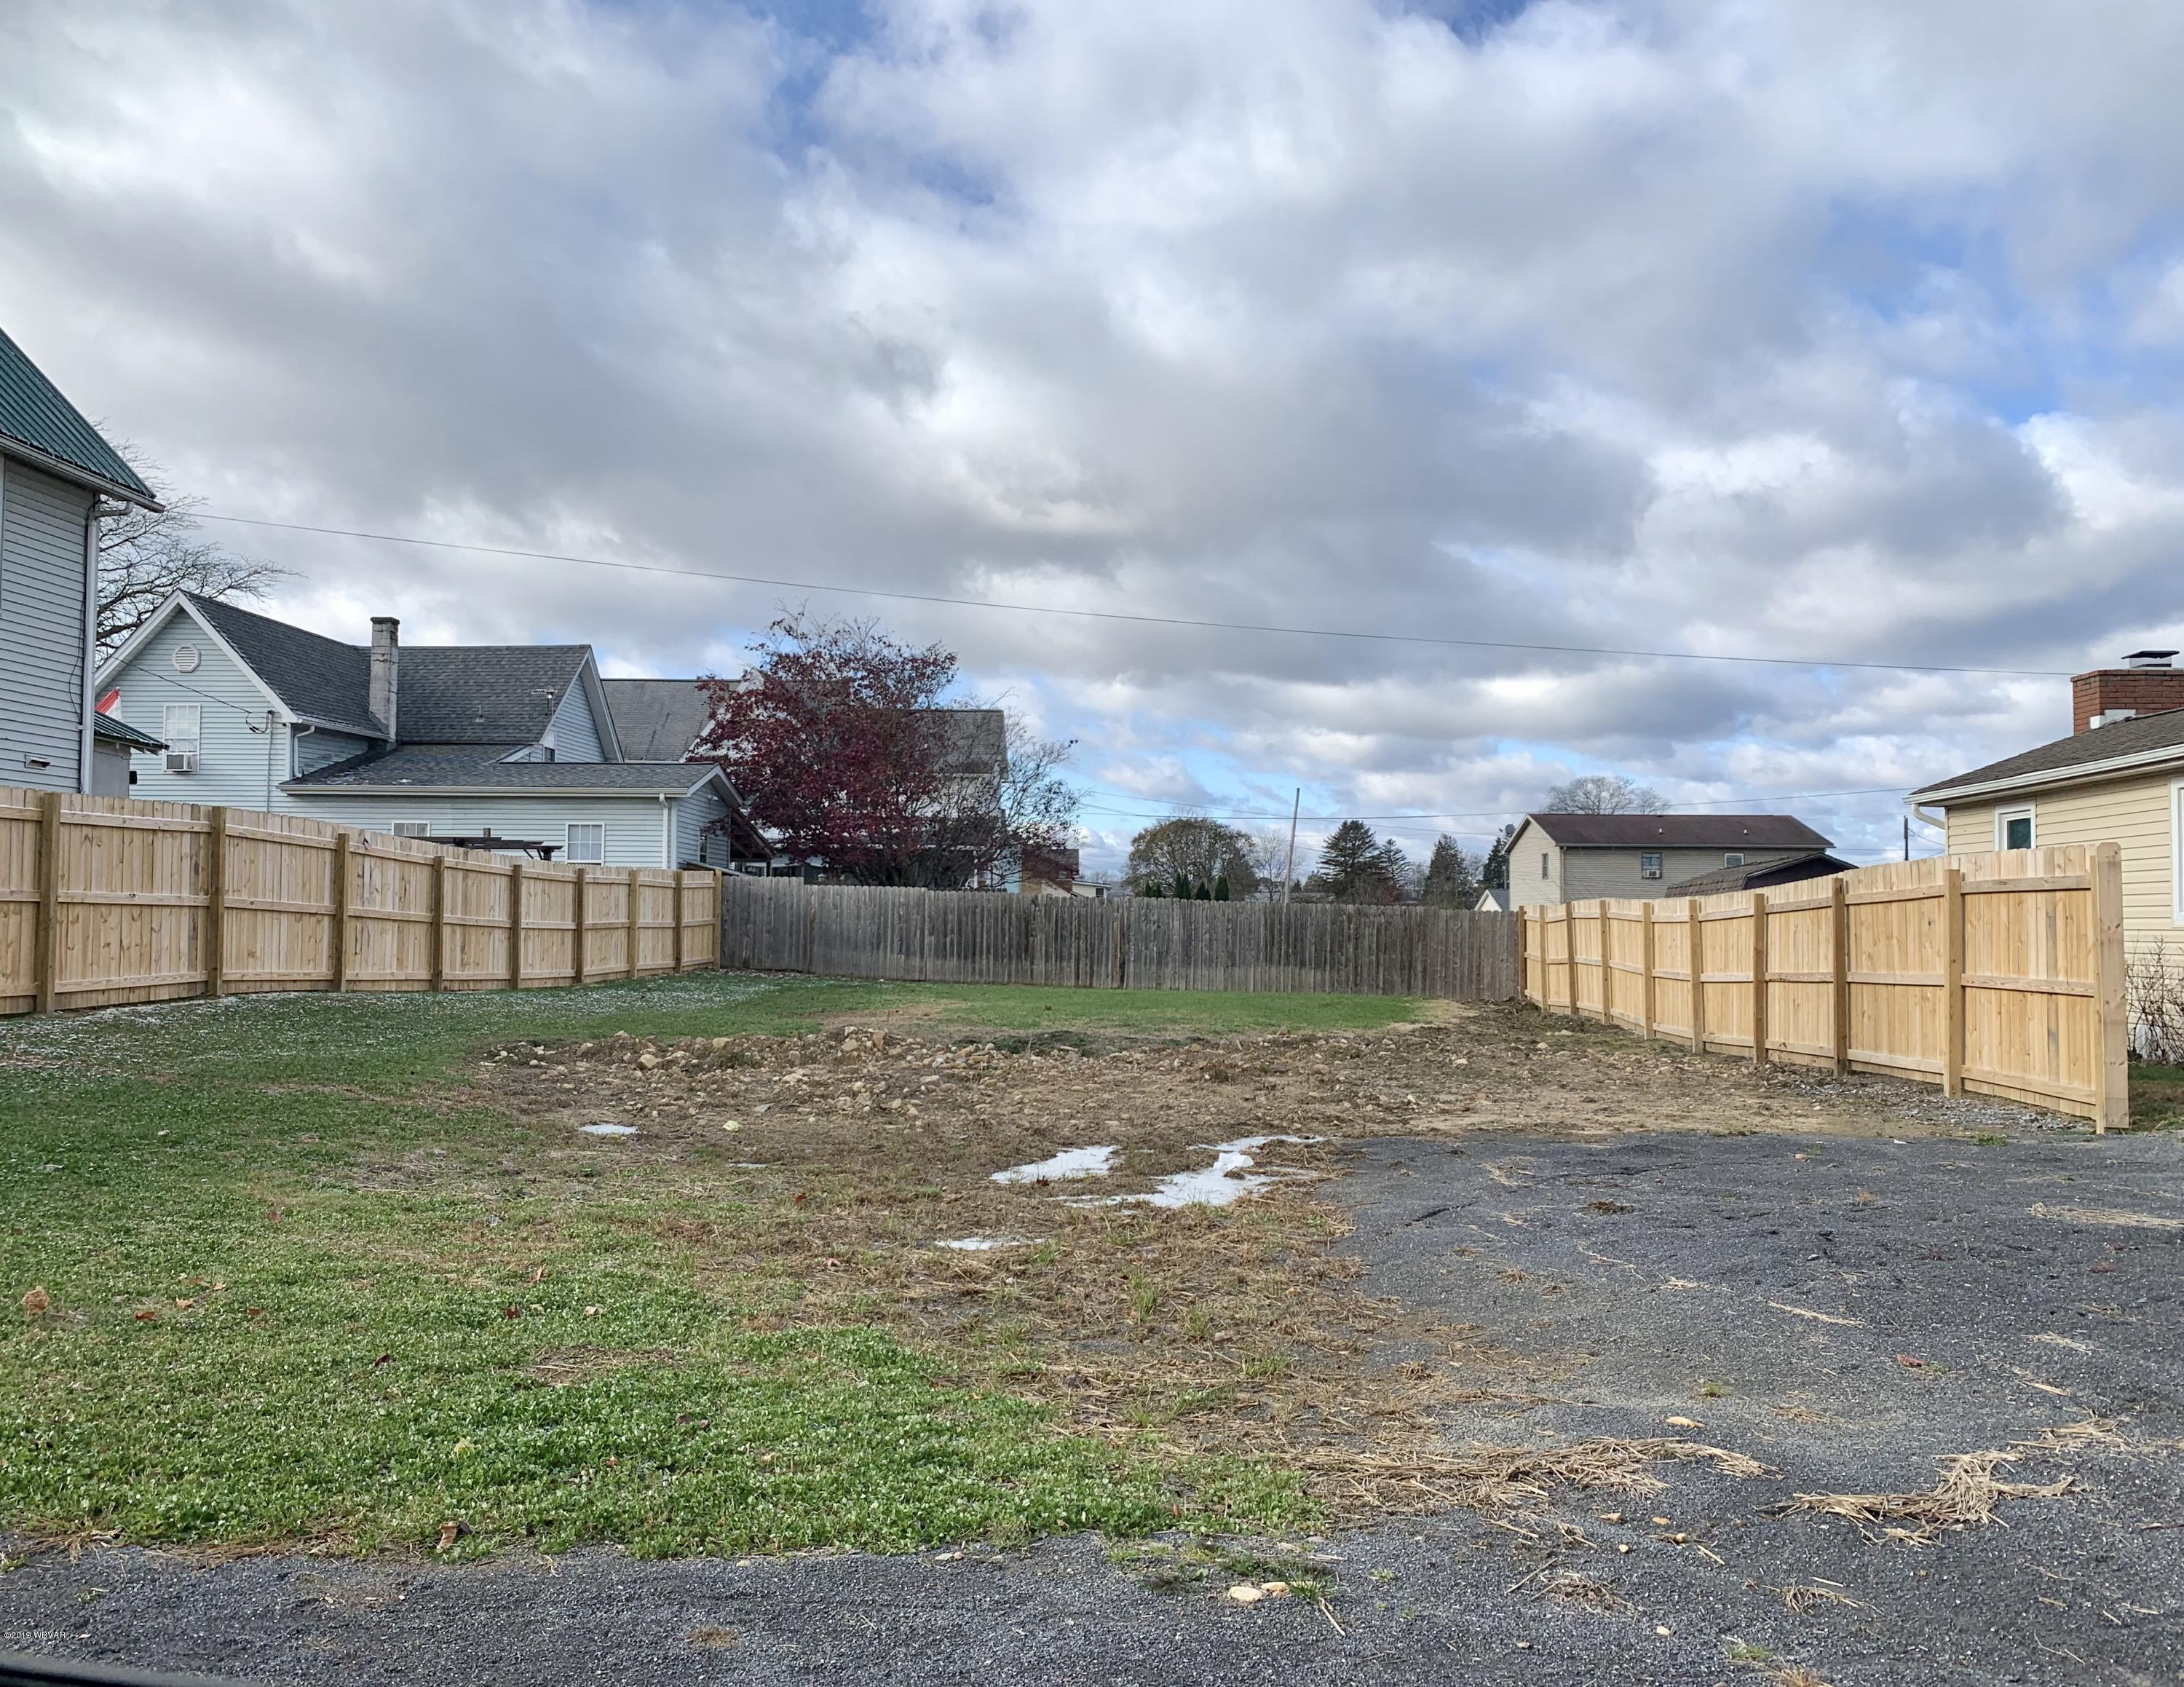 228 GLOVER STREET,Jersey Shore,PA 17740,Land,GLOVER,WB-89080